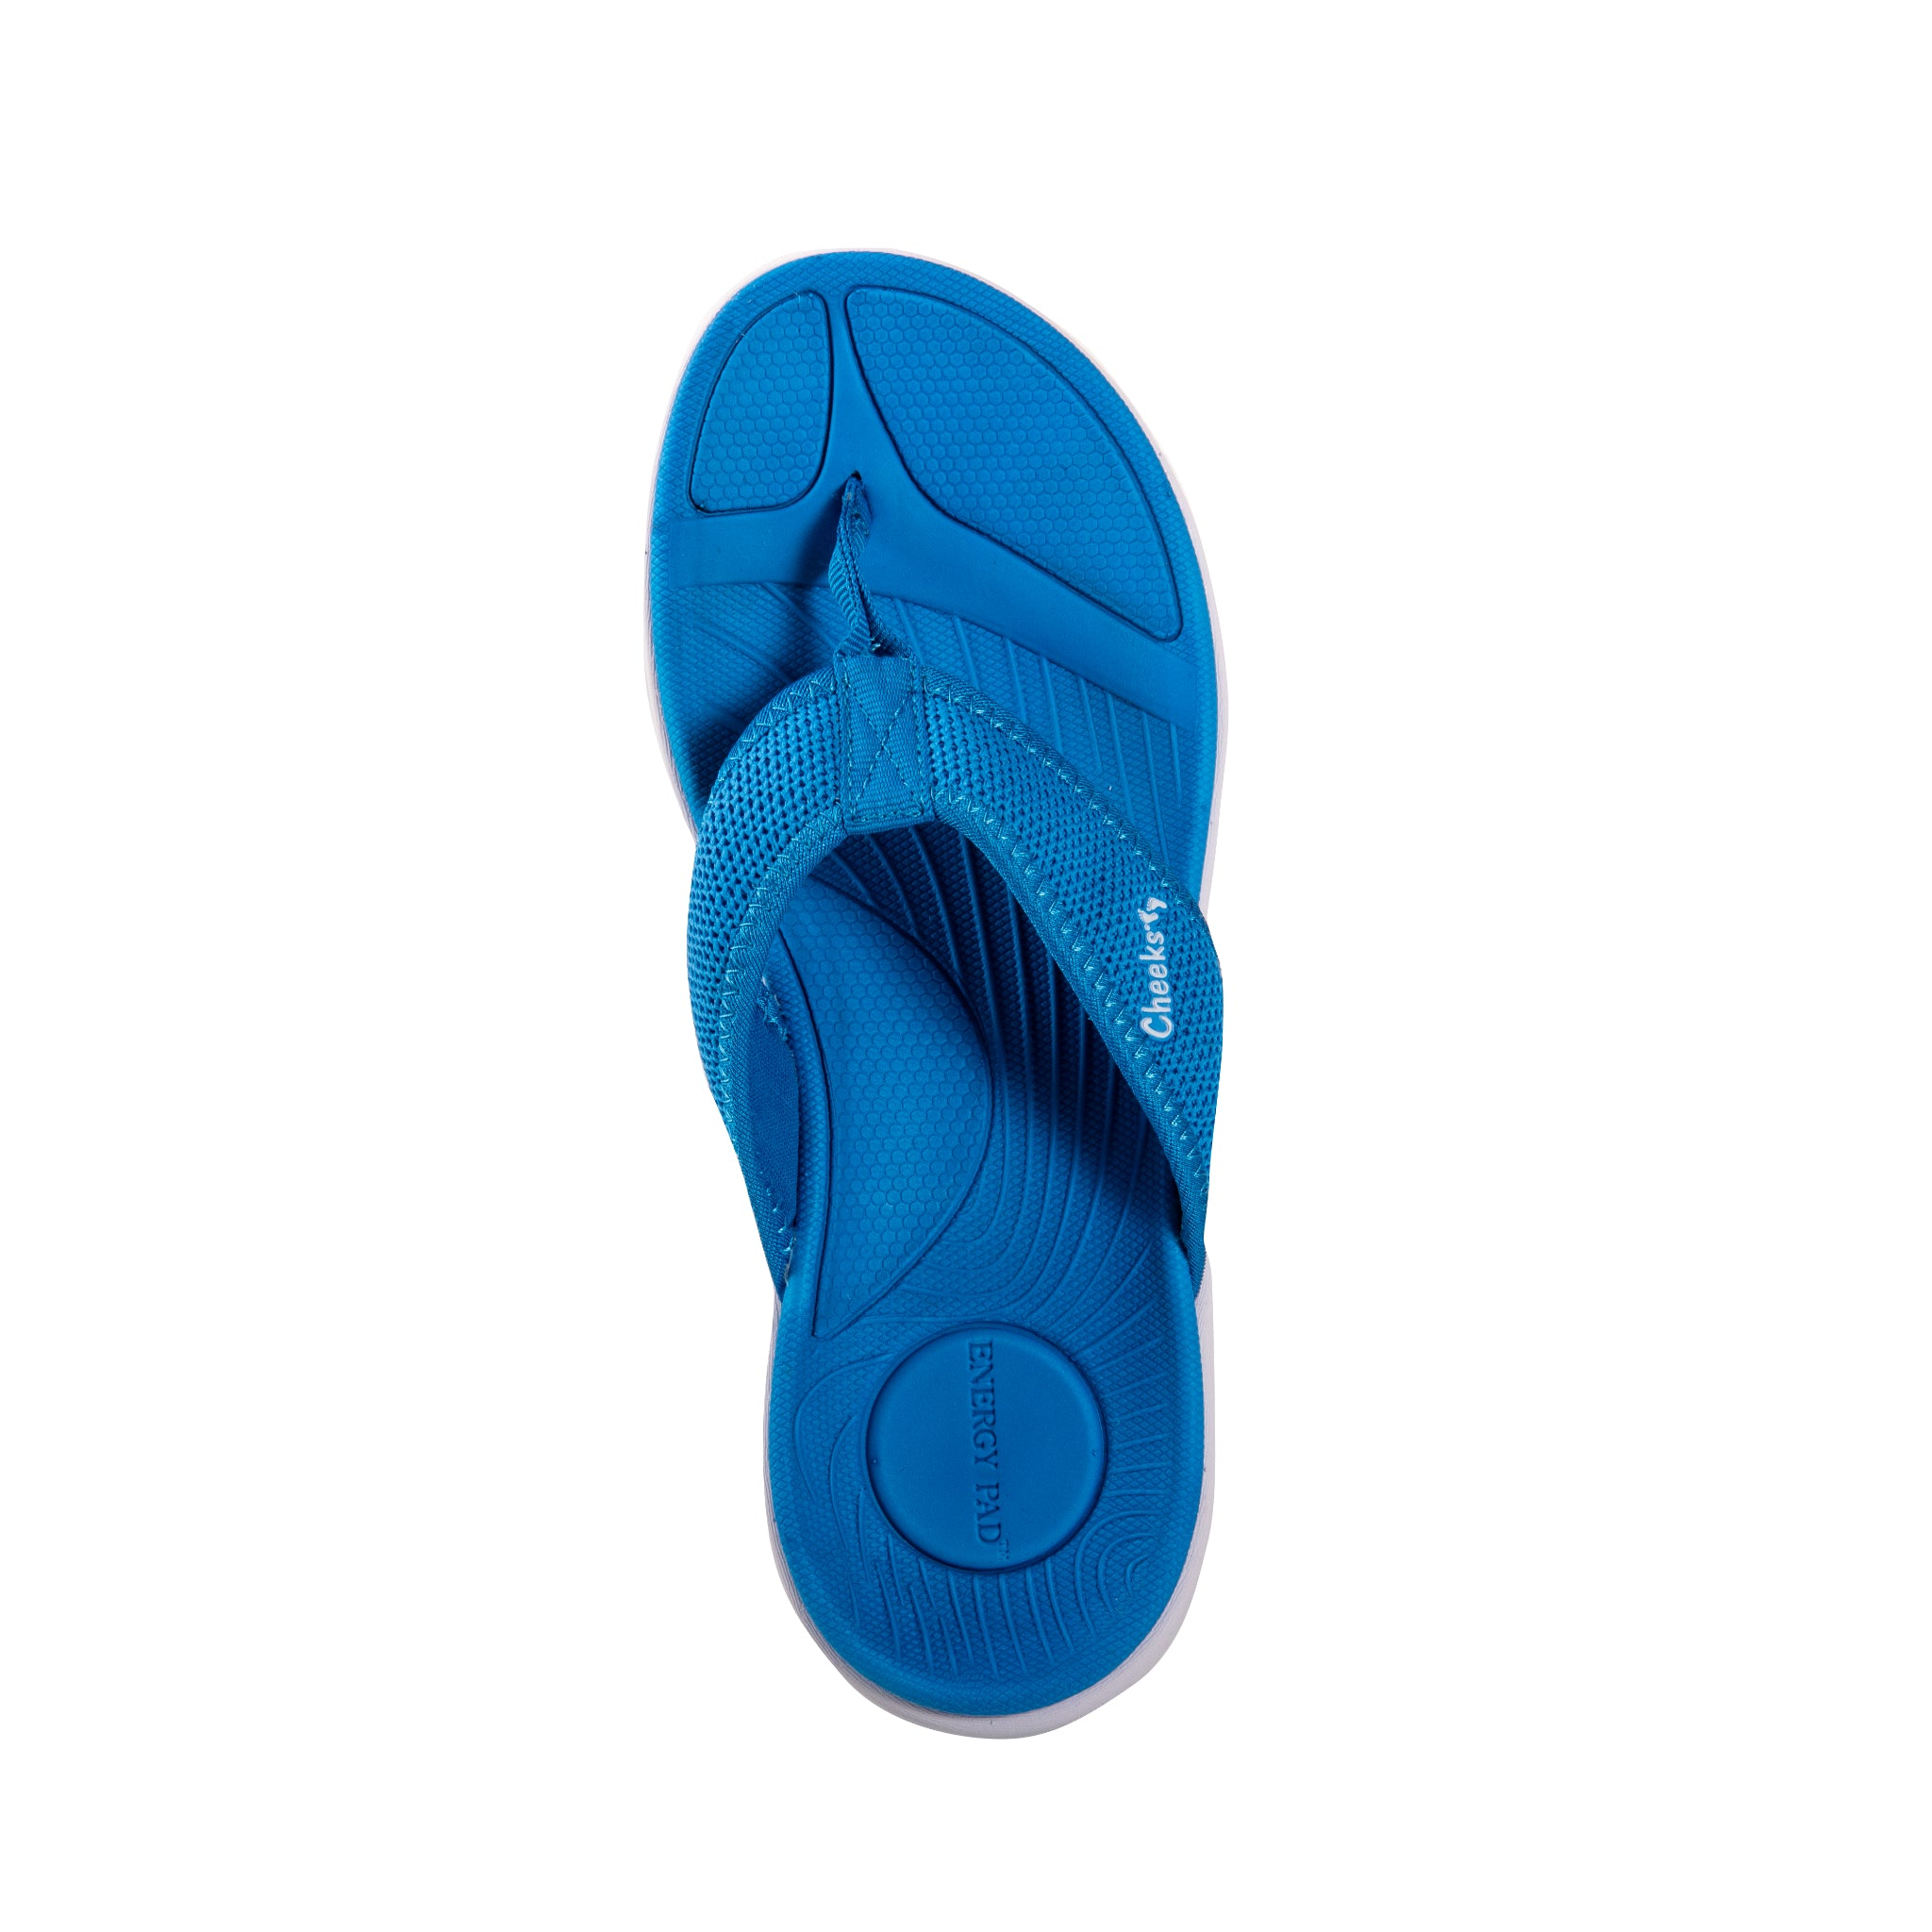 Cheeks women's Blue Mesh Cushys Sandals